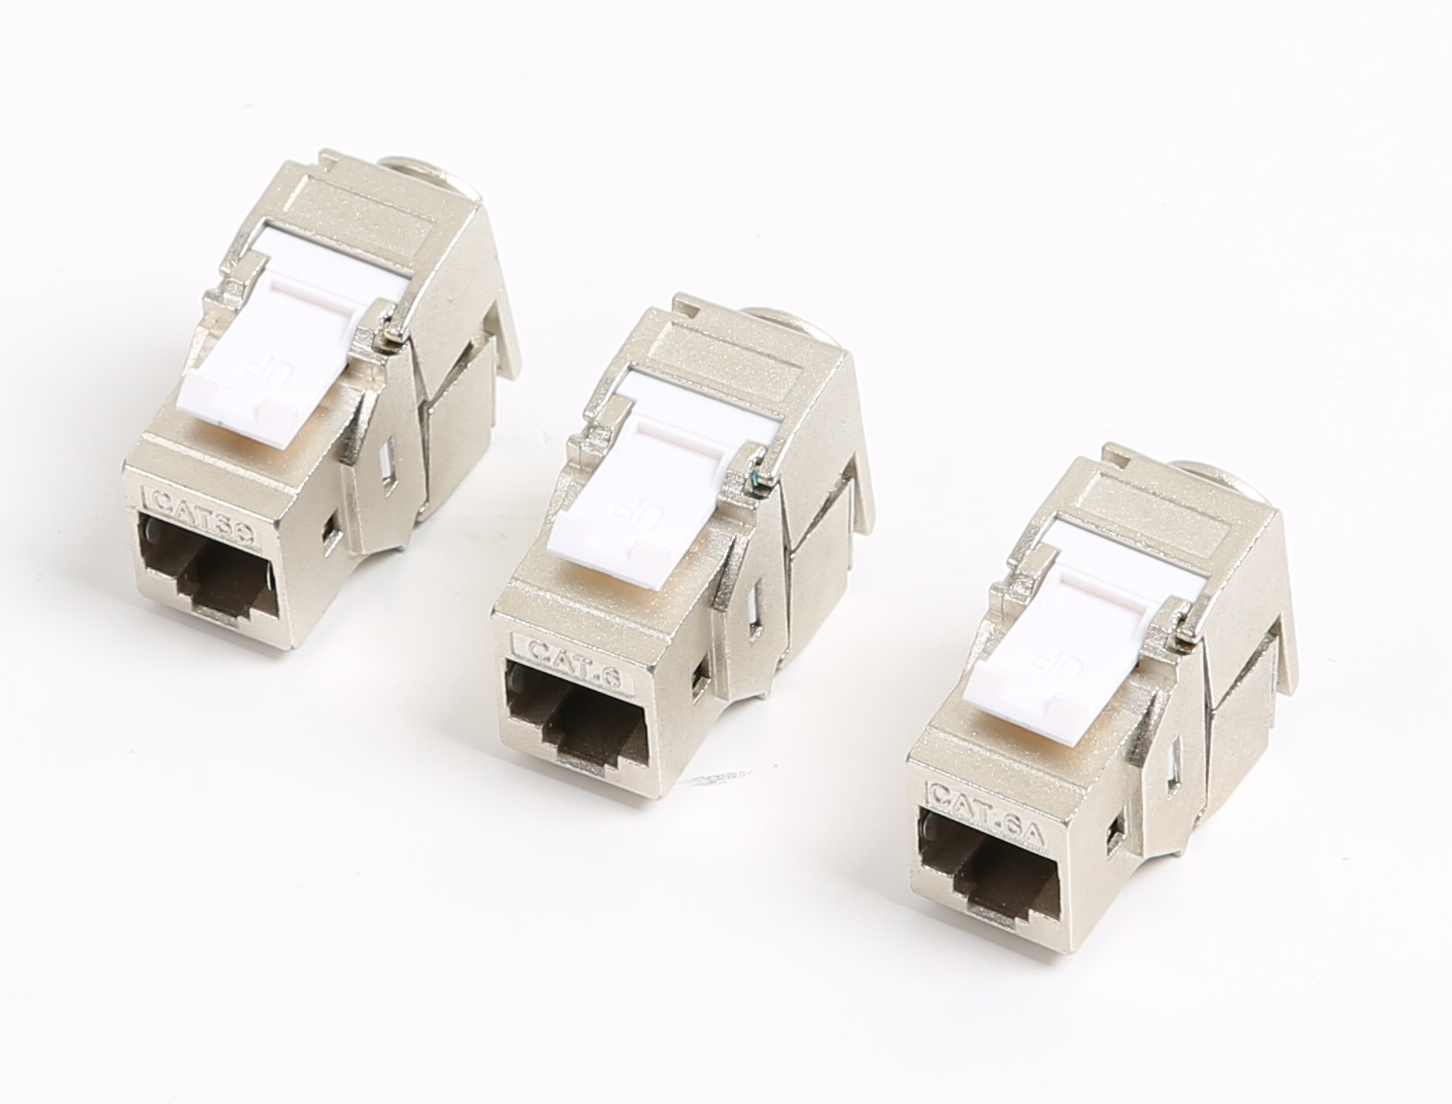 hight resolution of china tooless rj45 cat 6a keystone jack 180 degree china rj45 connector rj45 modular